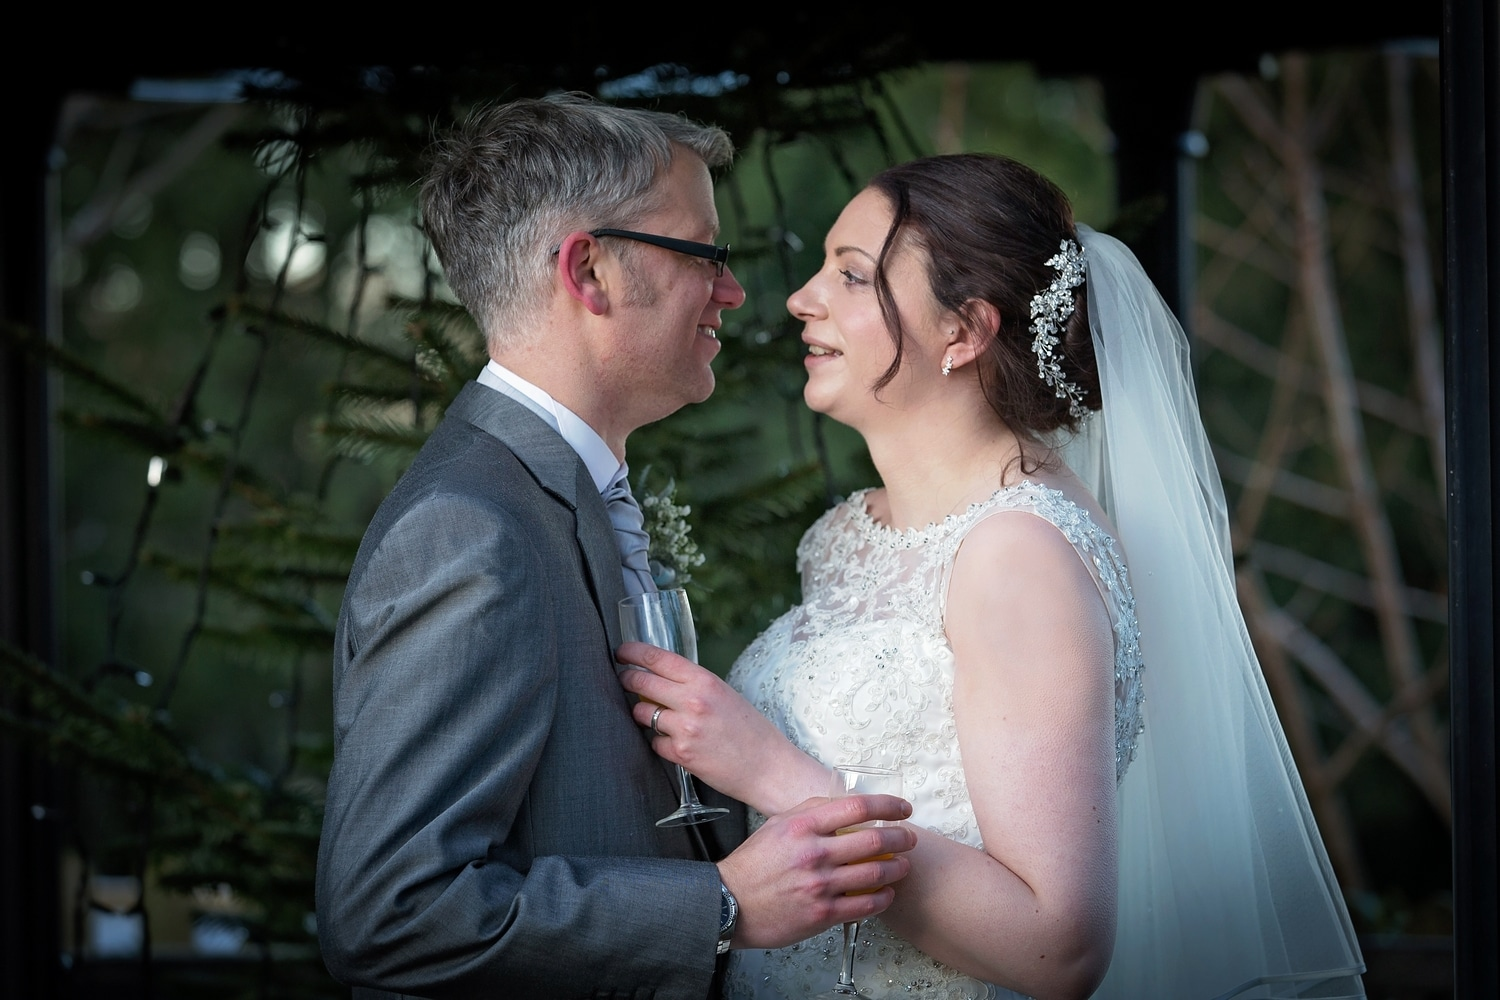 Cumbrian wedding photographer Keltic Rose Photography at the Crown Hotel